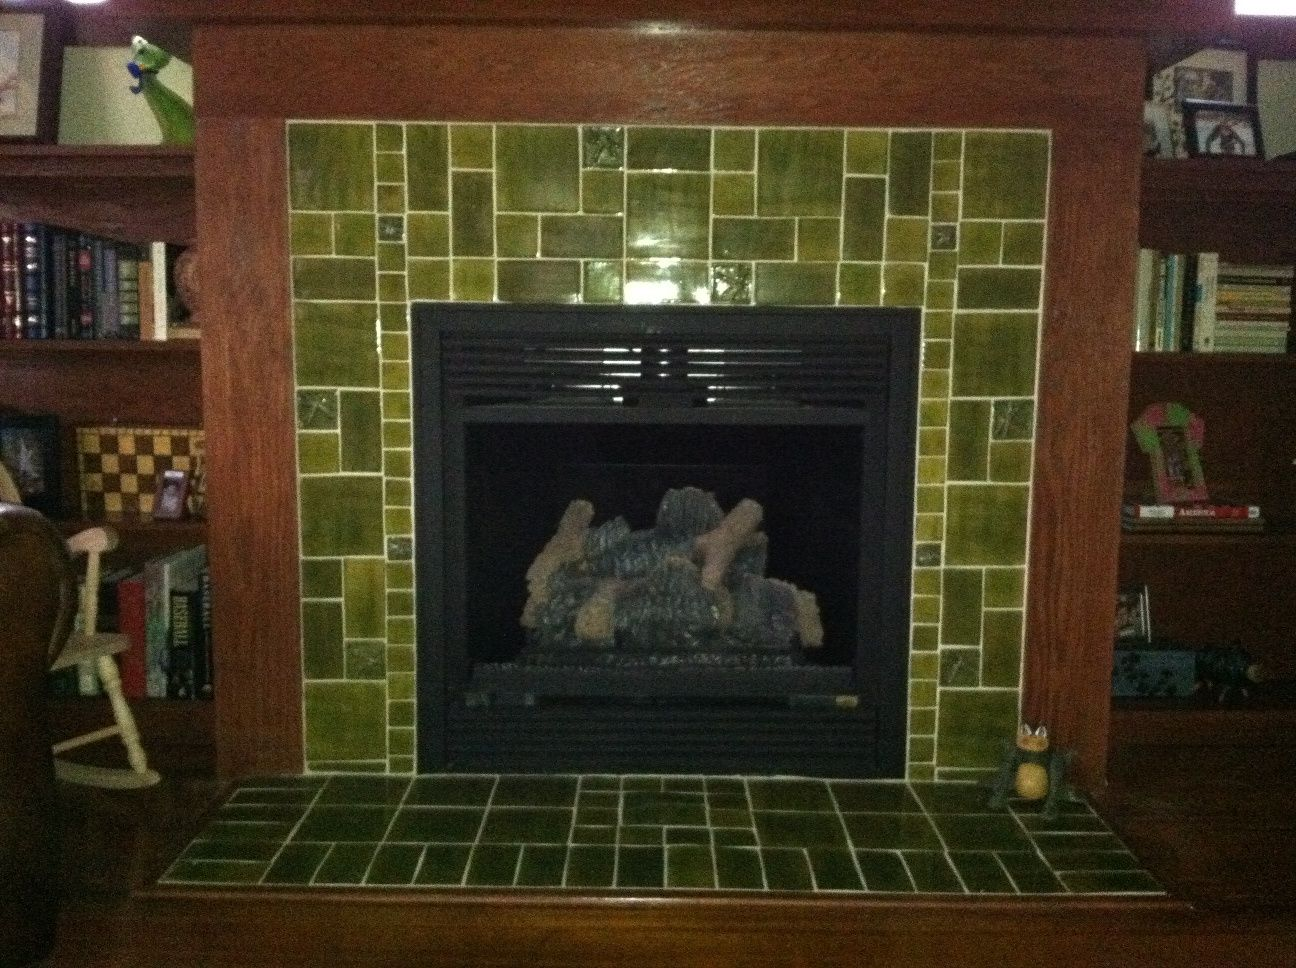 Design your own fireplace surround see terrapin tile handmade design your own fireplace surround see terrapin tile handmade tiles at these public places dailygadgetfo Choice Image